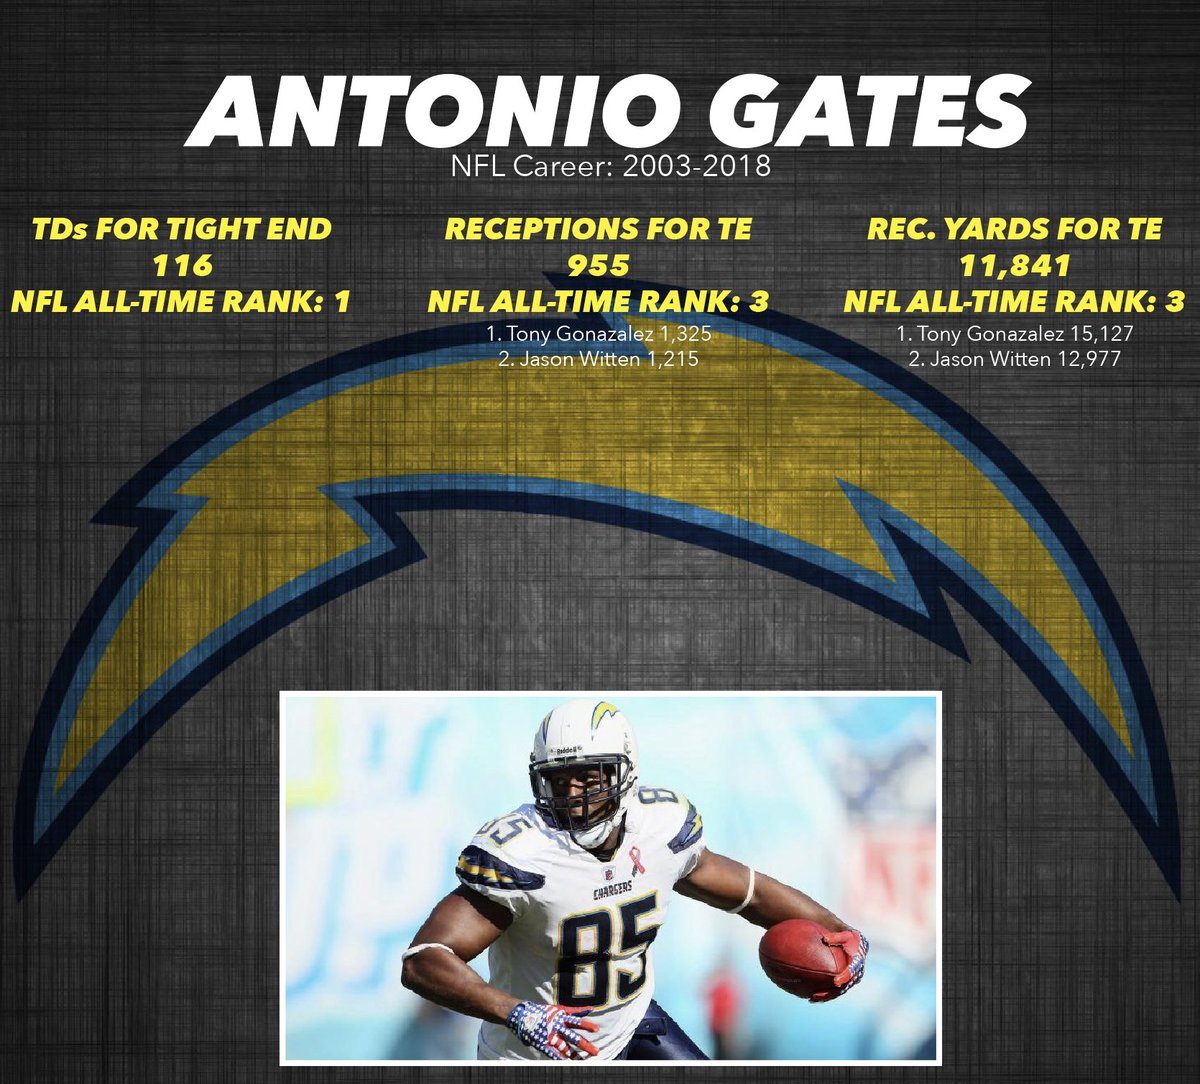 Antonio Gates officially announced his retirement from the NFL on Tuesday. The future Hall of Famer had one of the best careers for a tight end in league history.